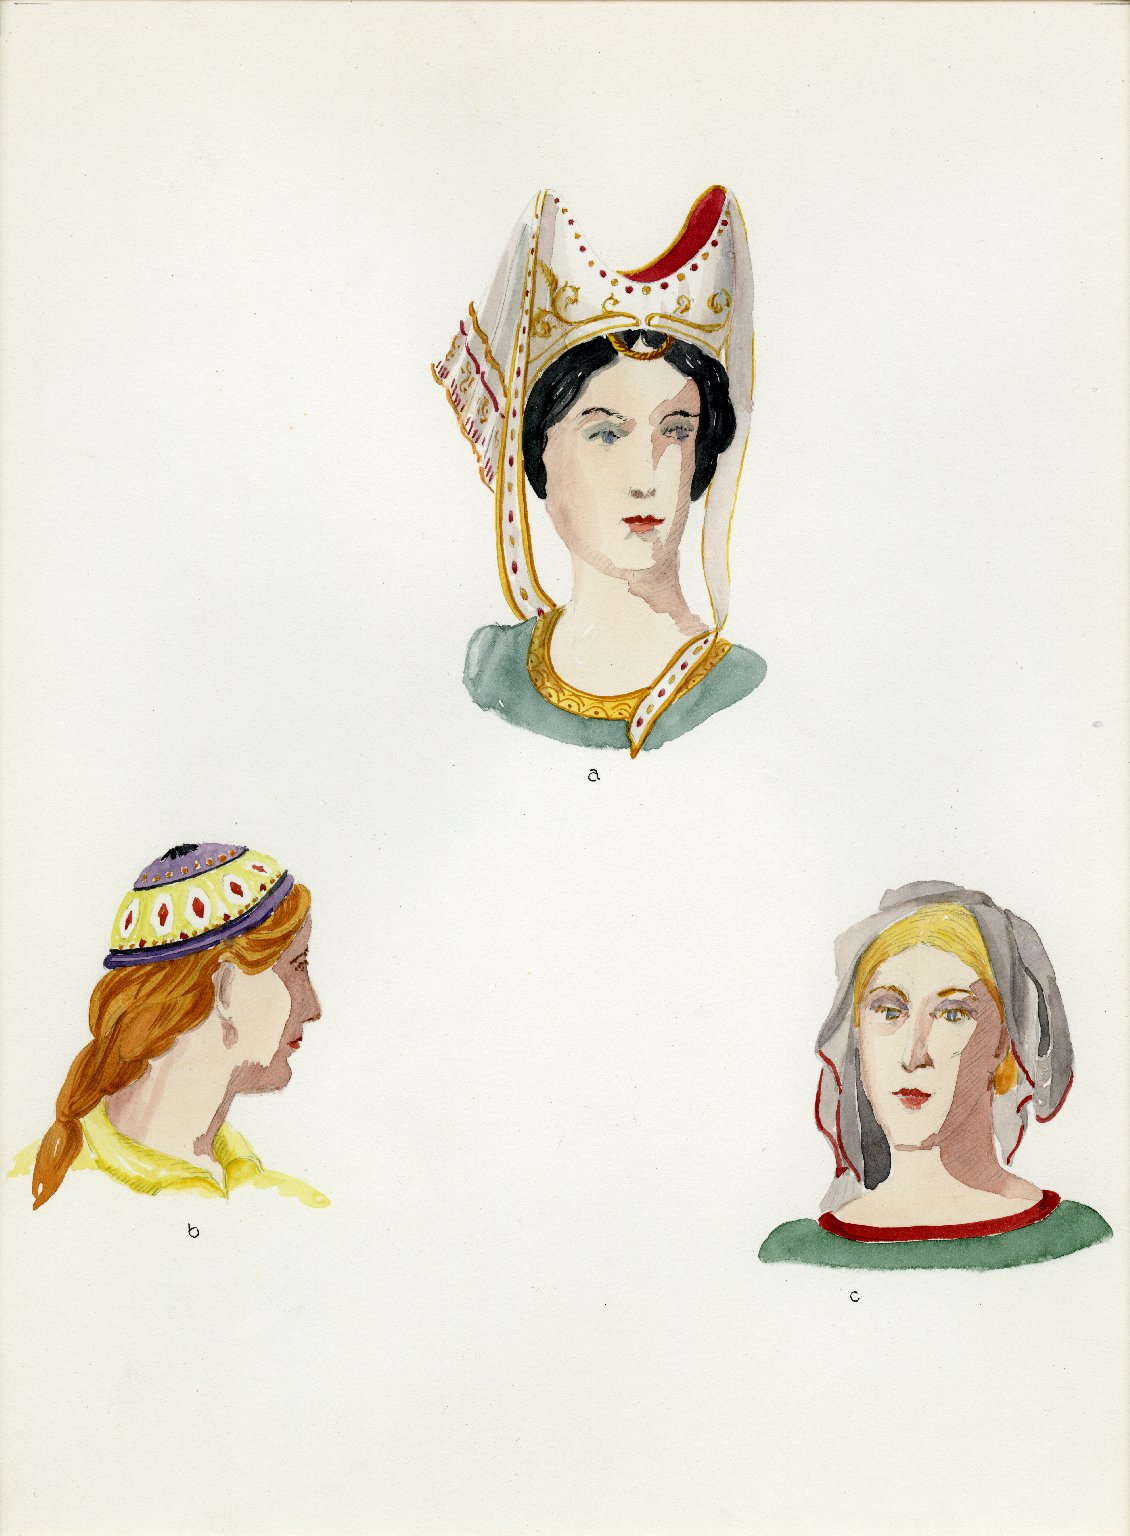 Plate VI: Late Middle Ages Italian headdress, cap, headdress